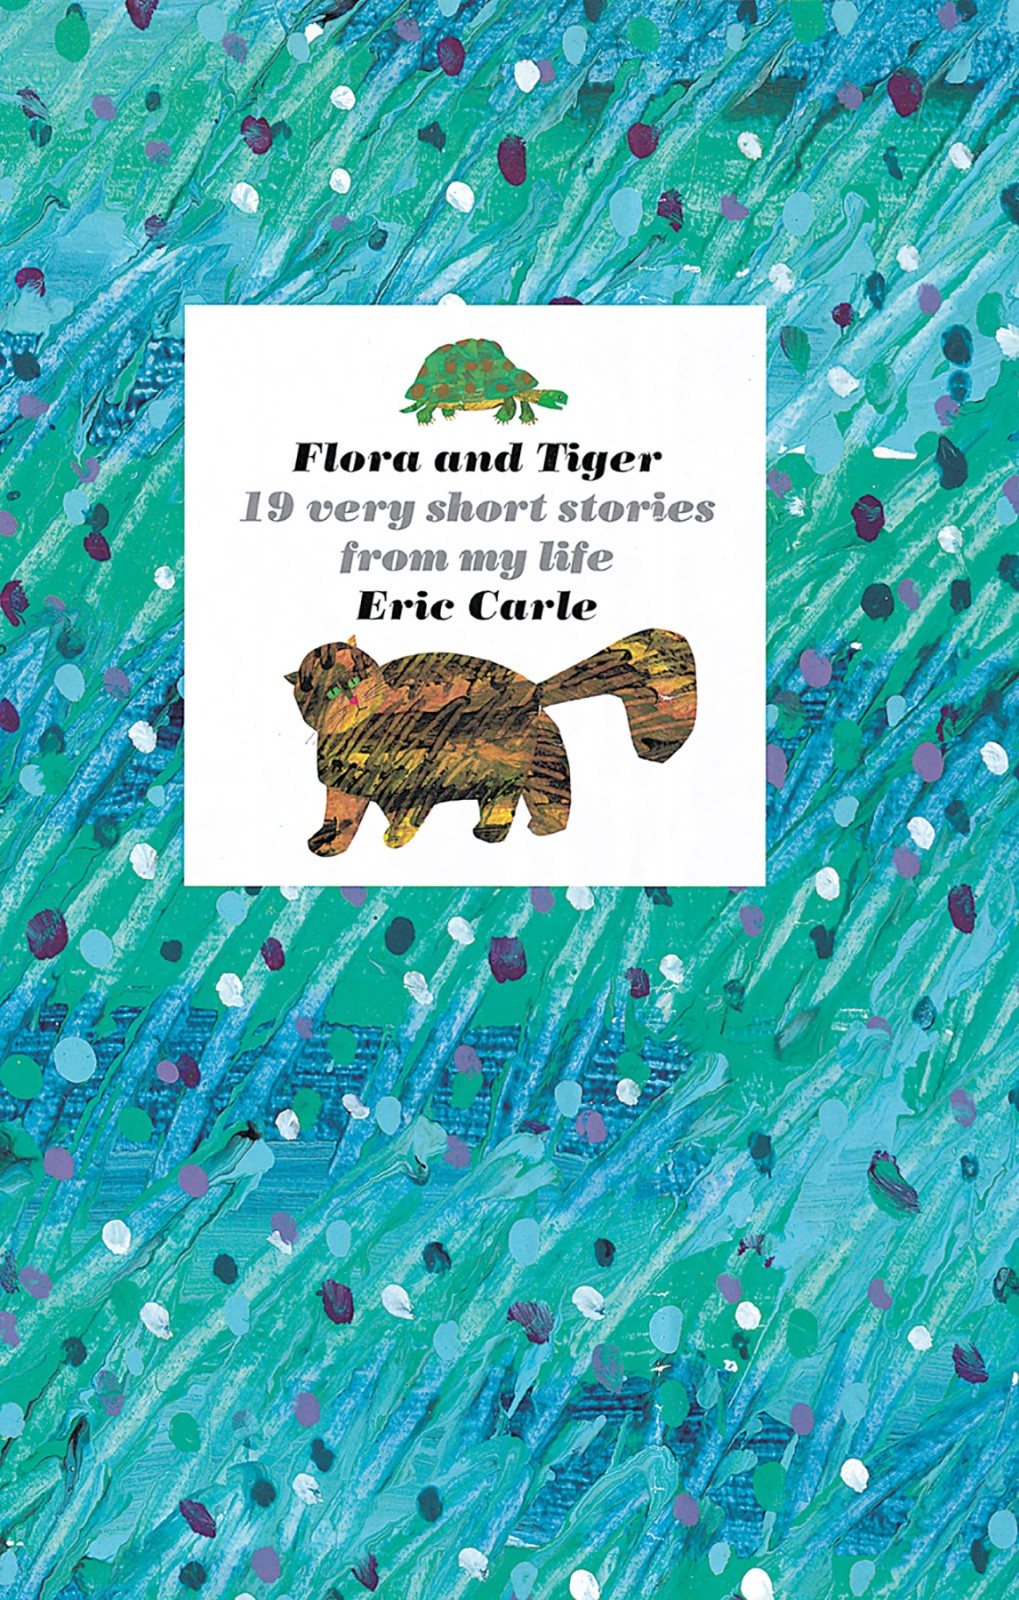 ec_cover_flora-and-tiger